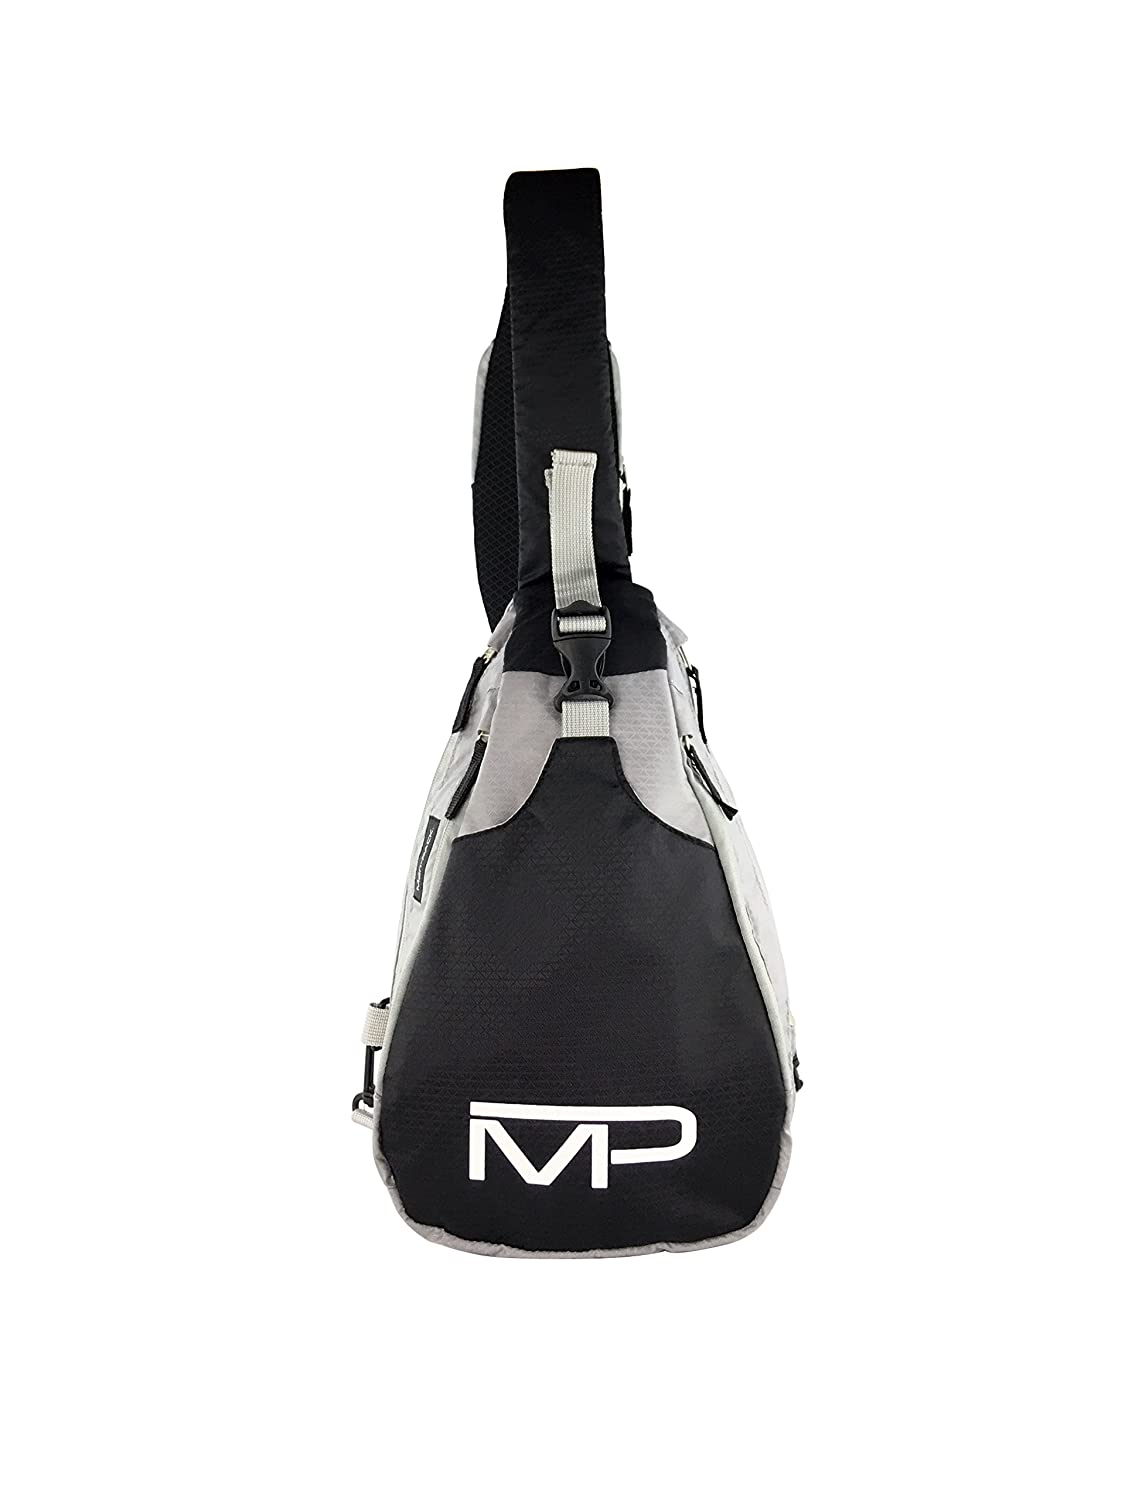 Universal Conceal Carry Sling Pack Spitfire by Man-PACK As Seen On ABC Sharktank